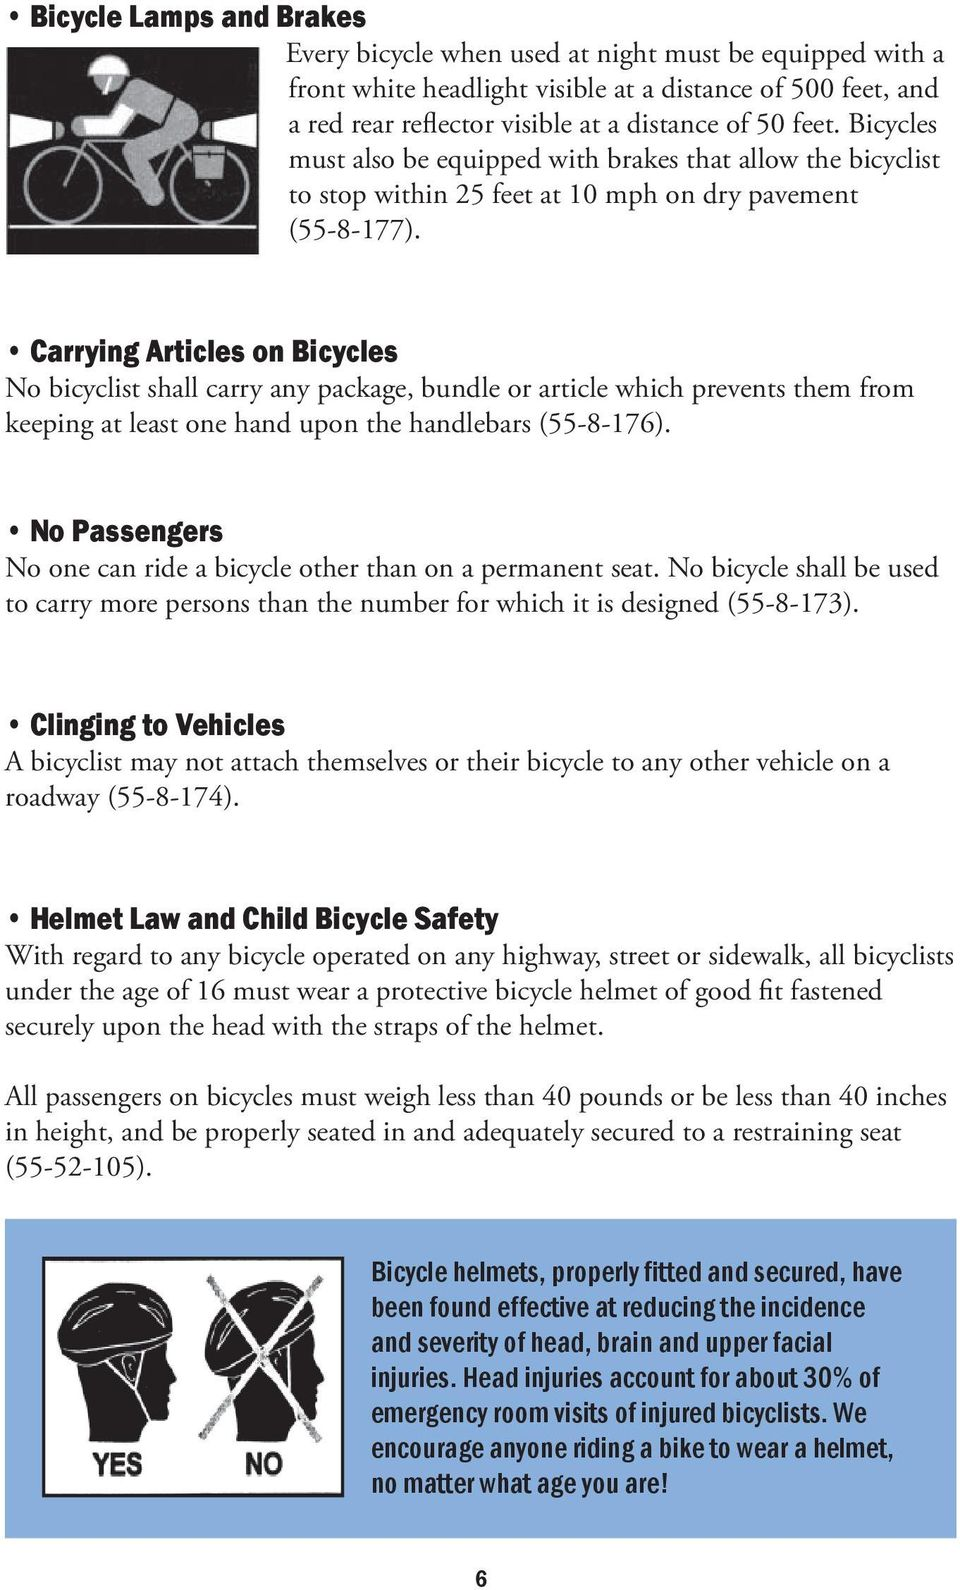 Carrying Articles on Bicycles No bicyclist shall carry any package, bundle or article which prevents them from keeping at least one hand upon the handlebars (55-8-176).